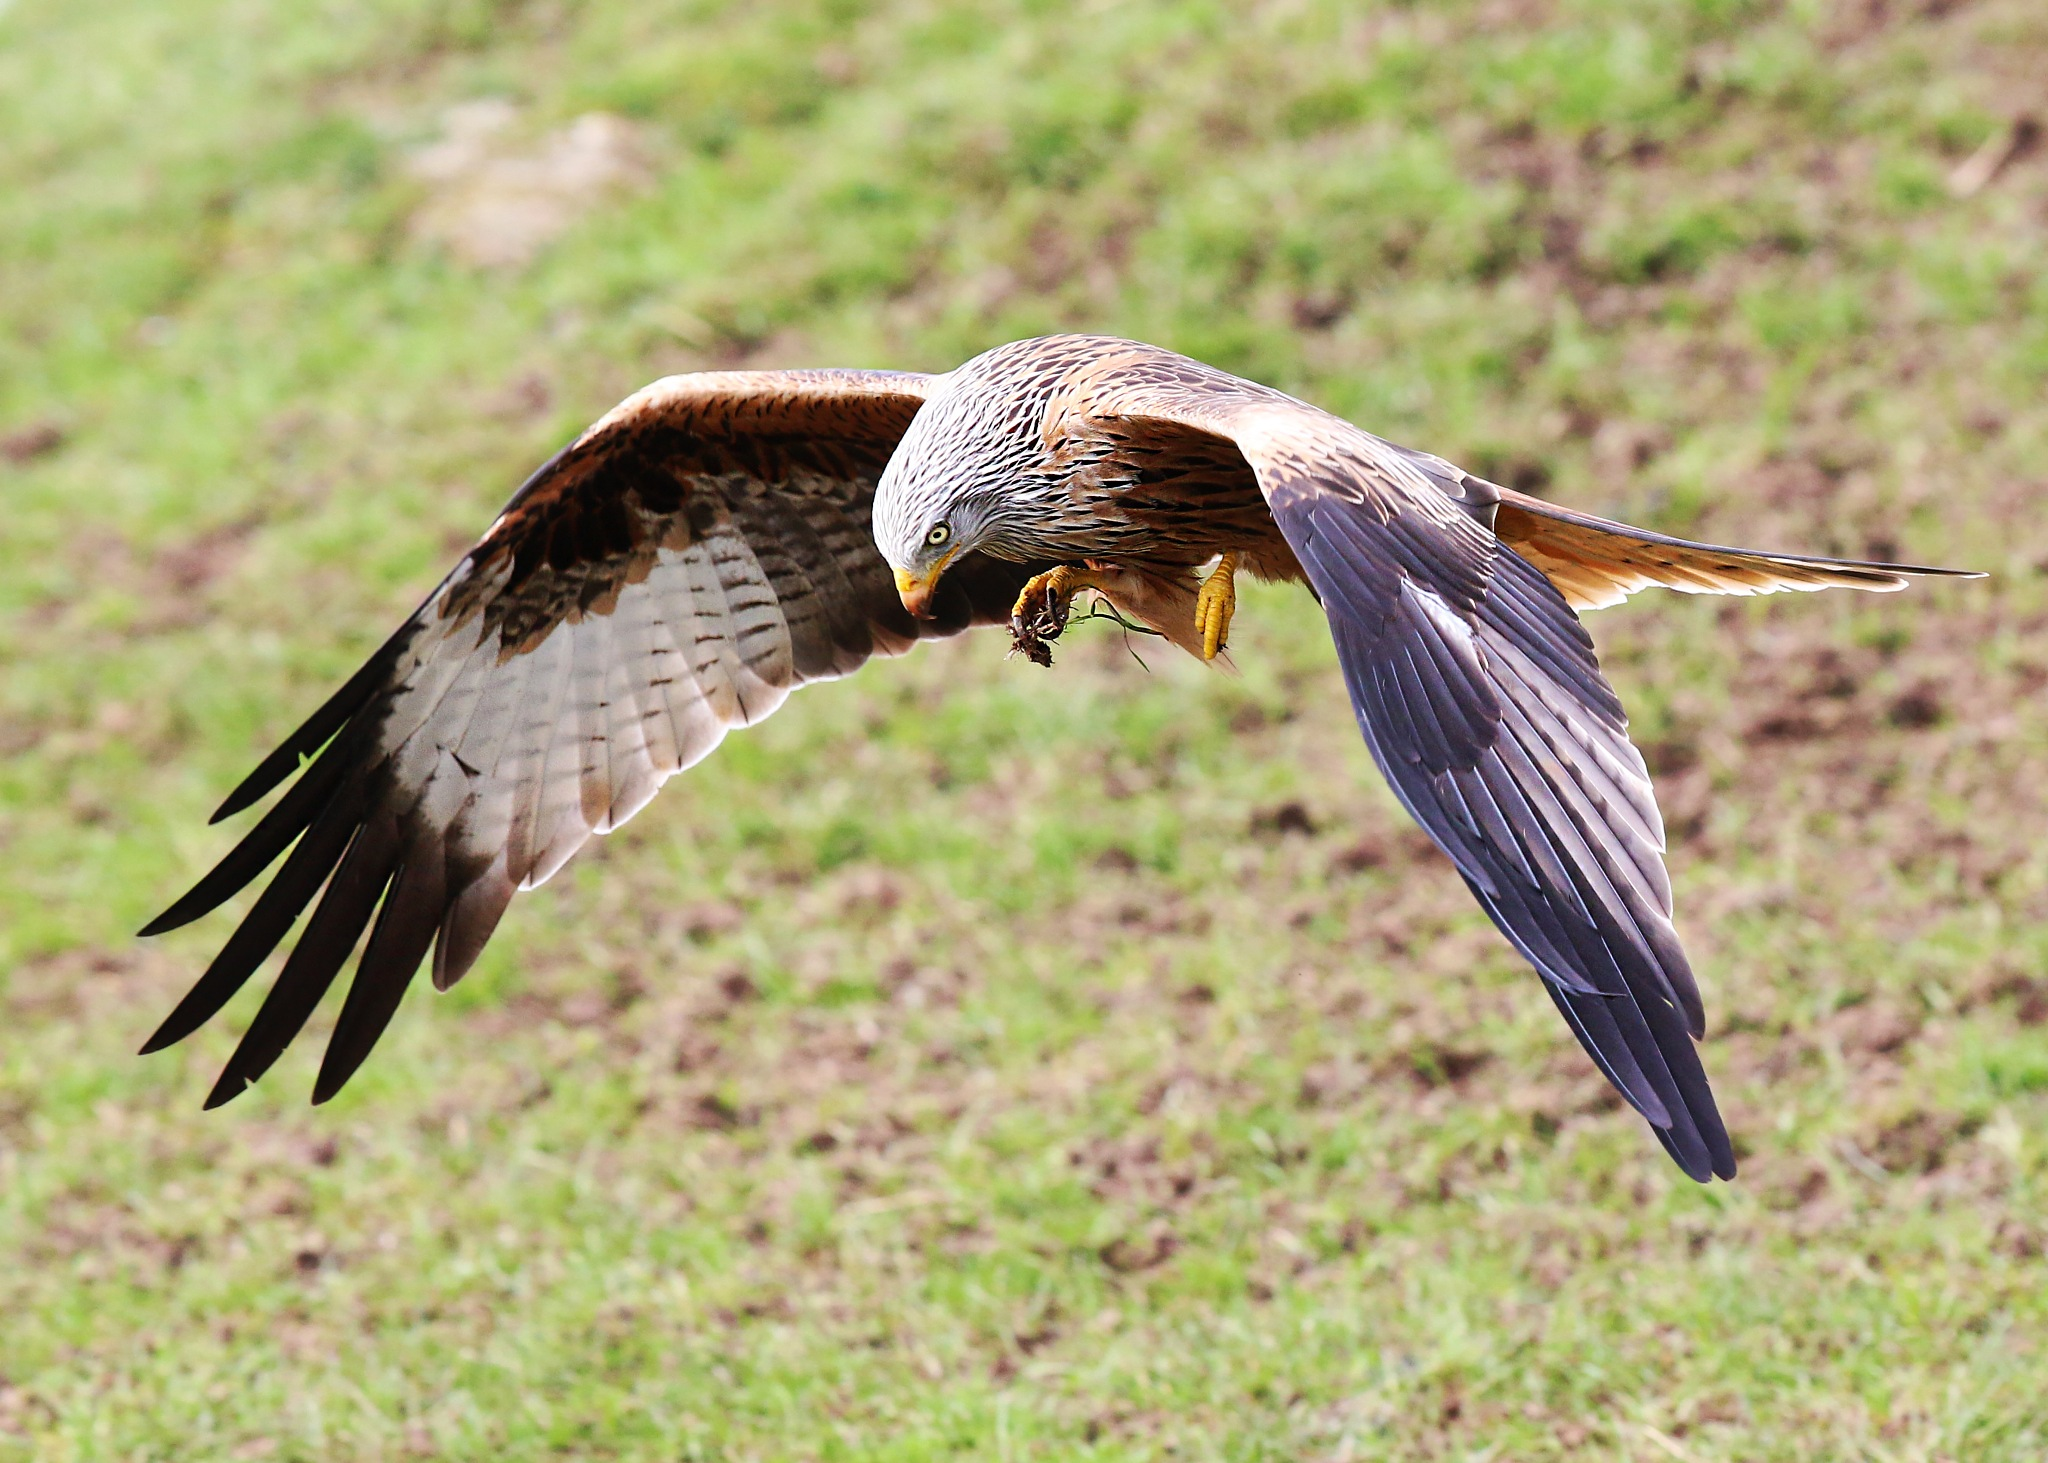 Red kite trying to grab food by Roland Rodgerson